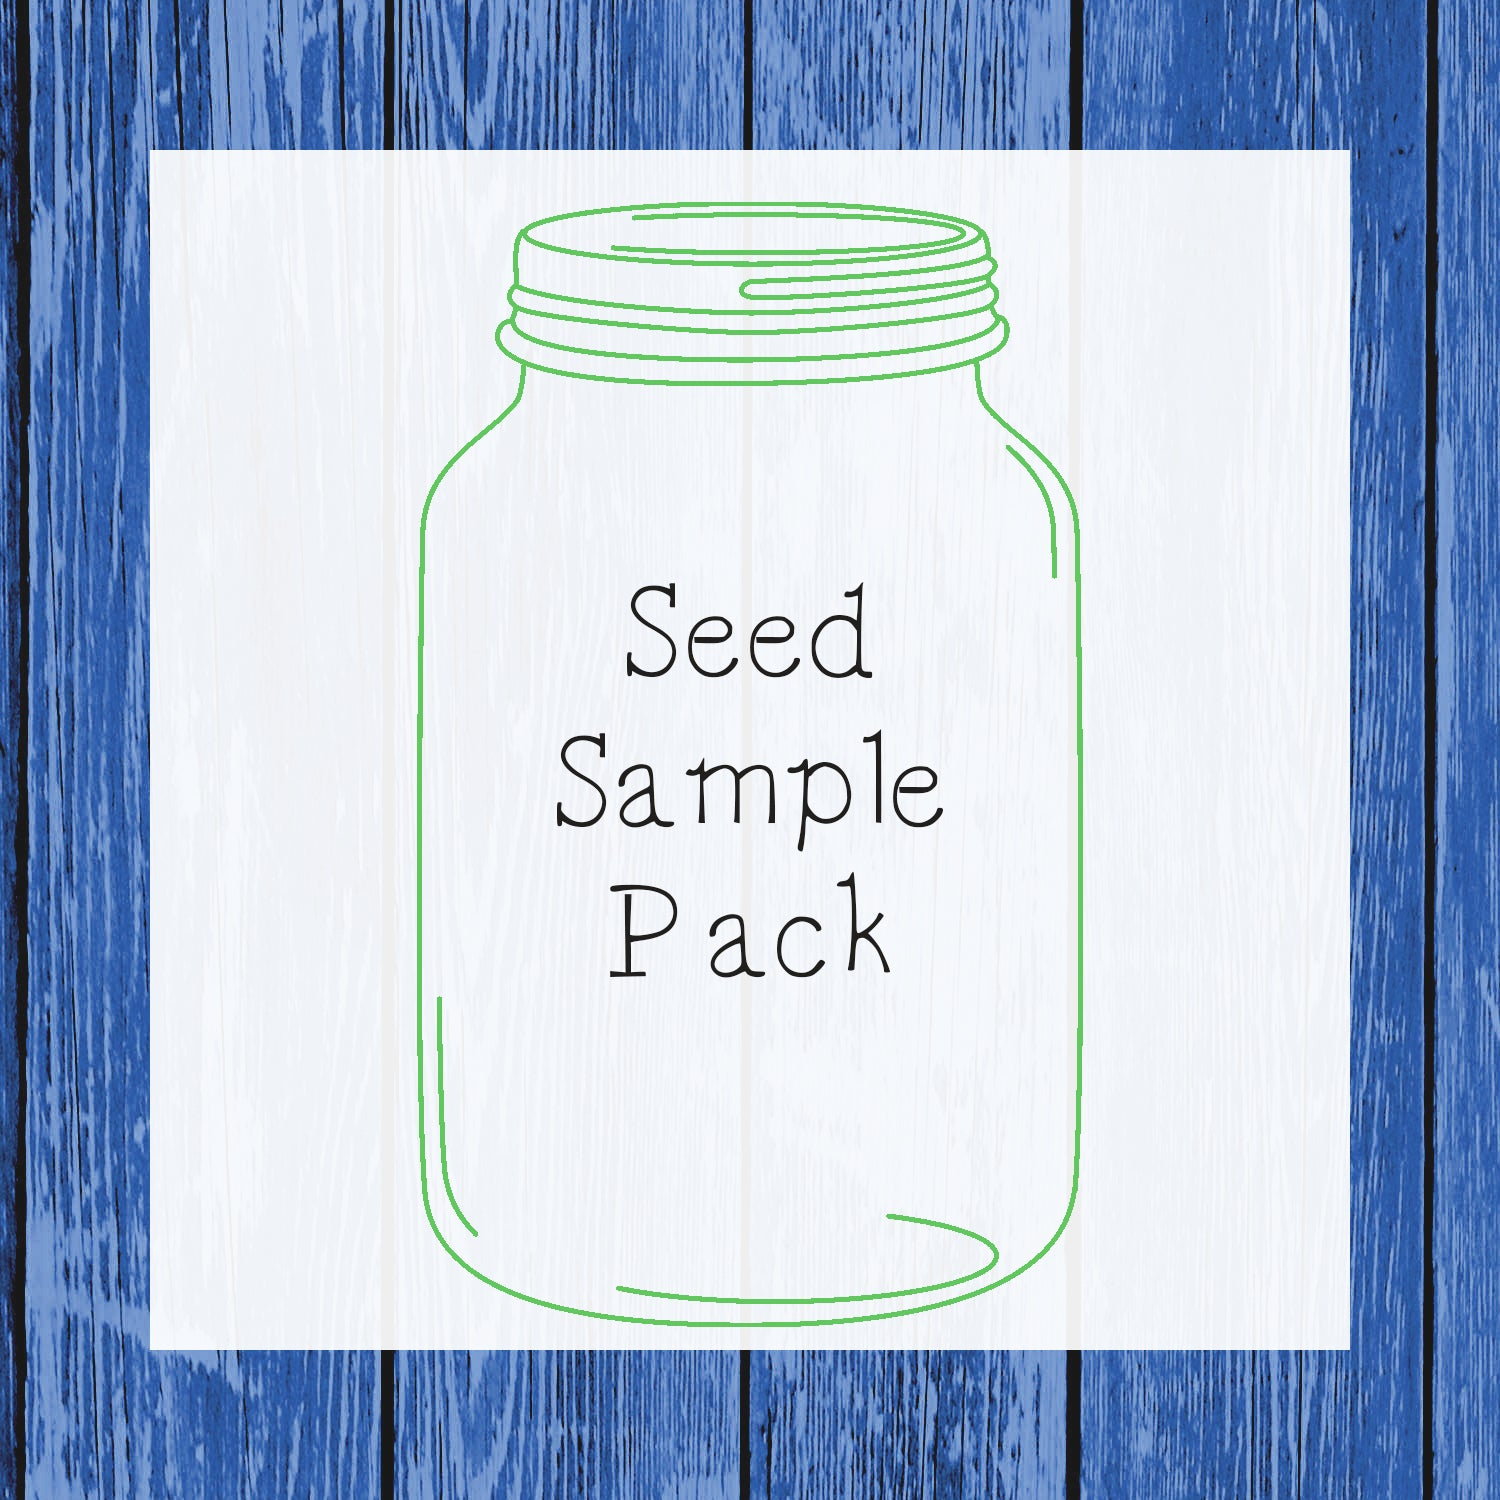 Seed Sample Pack (Sample Bags) - Hermit Crab Food - Organic - Hermit Crab - Pet Food - Hermie's Kitchen